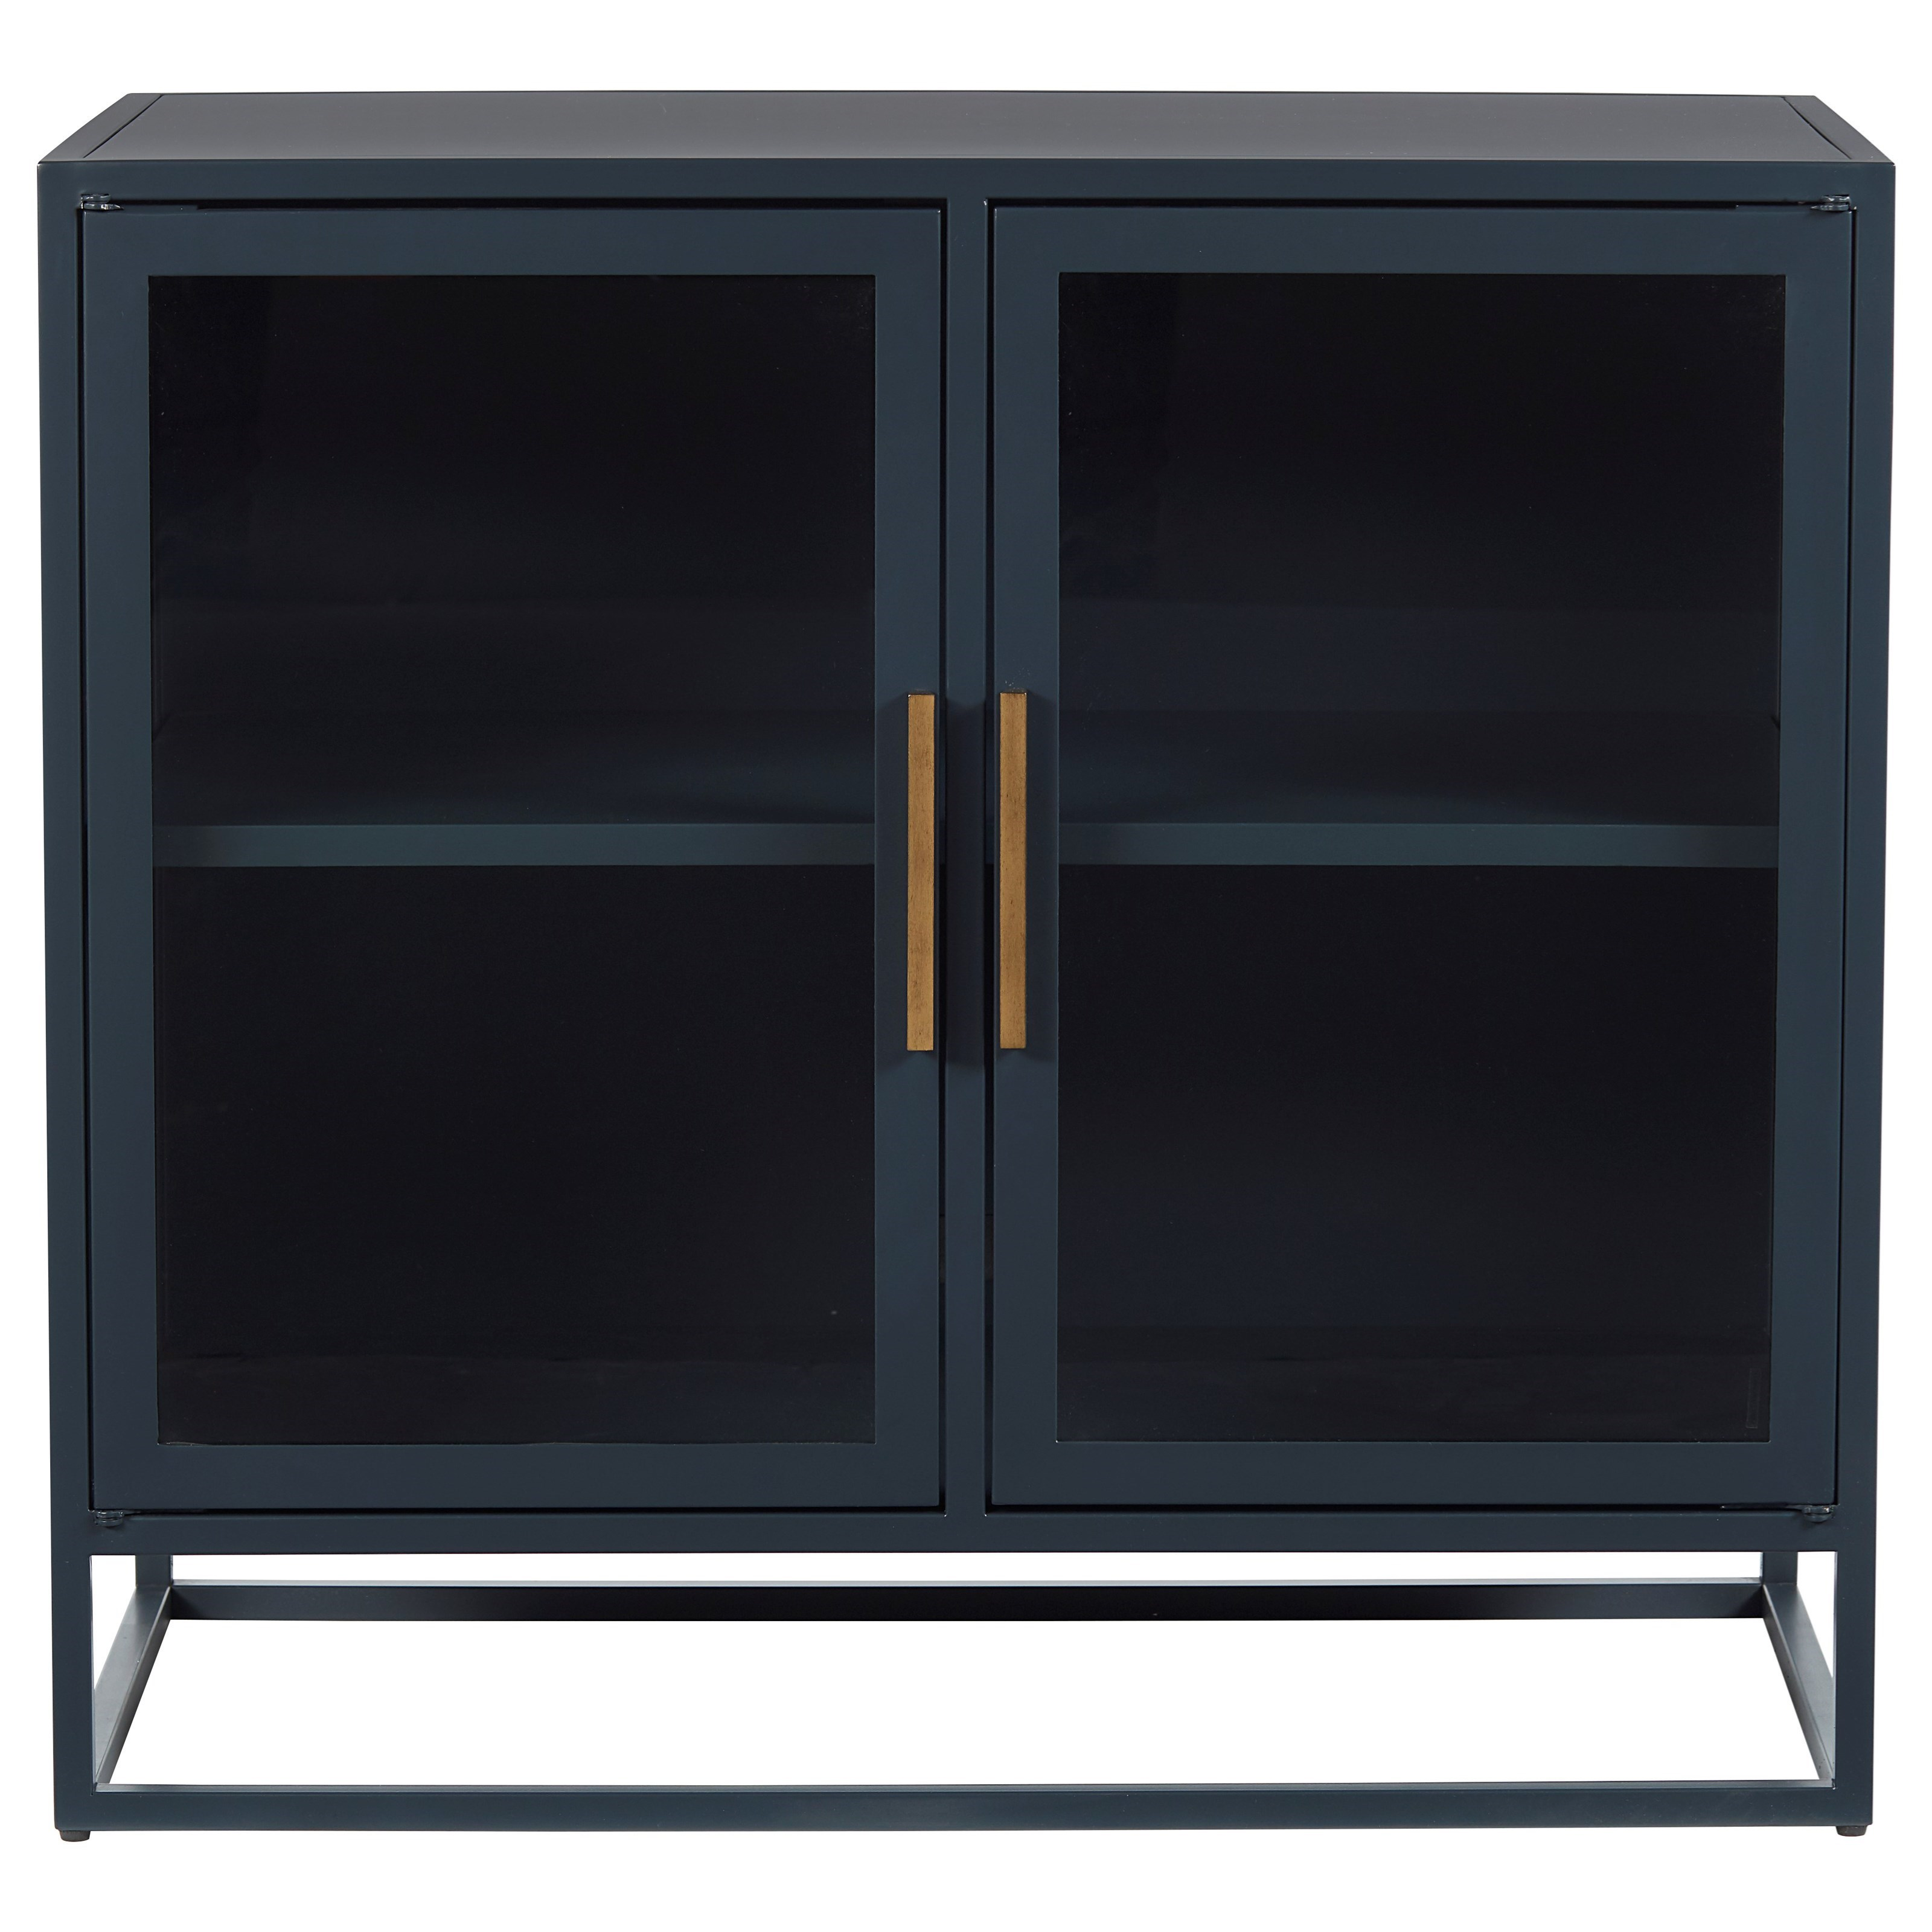 Coastal Living Home - Getaway Kitchen Cabinet by Universal at Baer's Furniture